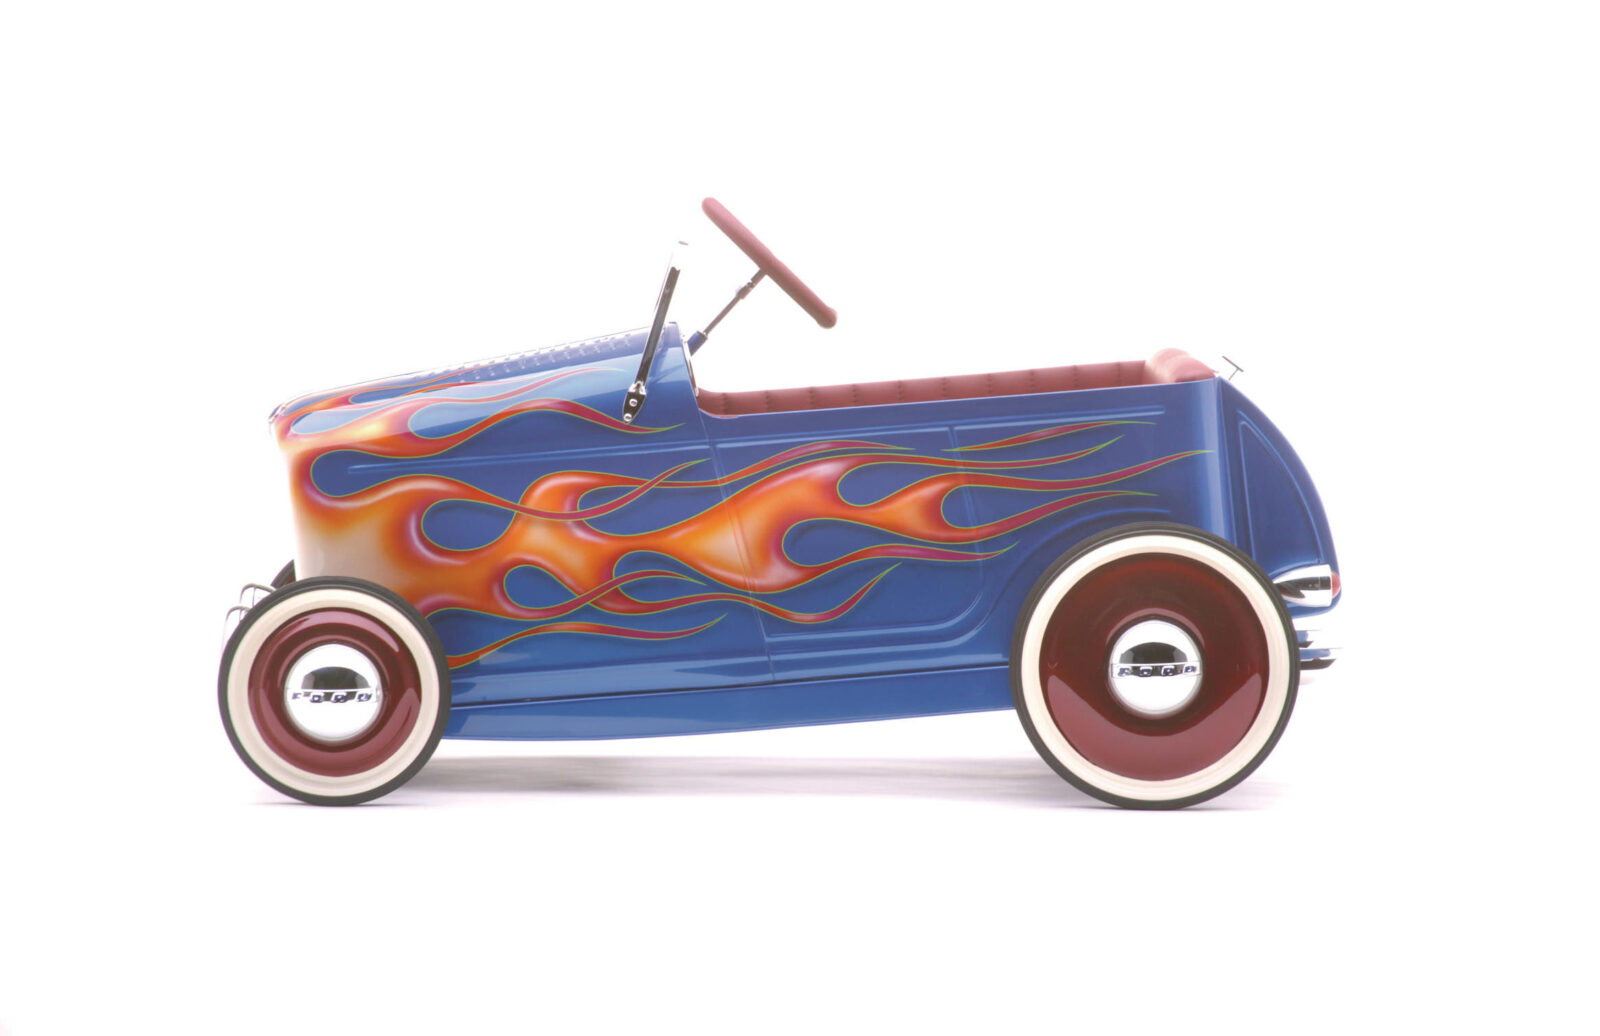 kids pedal car godson rodfather 1600x1036 - Kids' Pedal-Powered Hot Rod